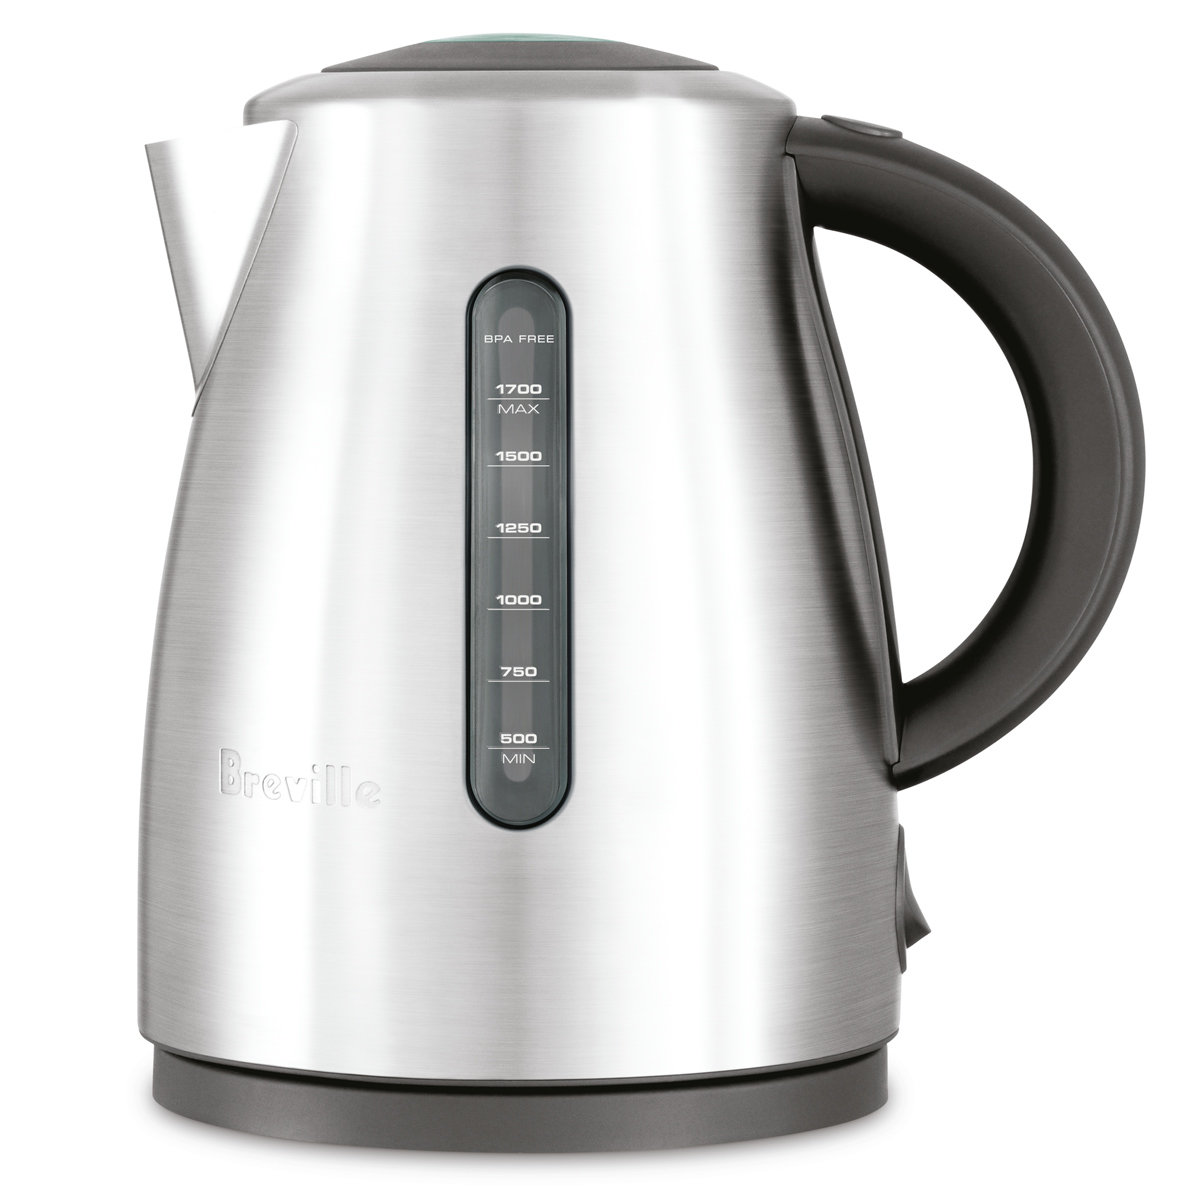 Breville BKE495BSS 1 7L the Soft Top Clear Kettle